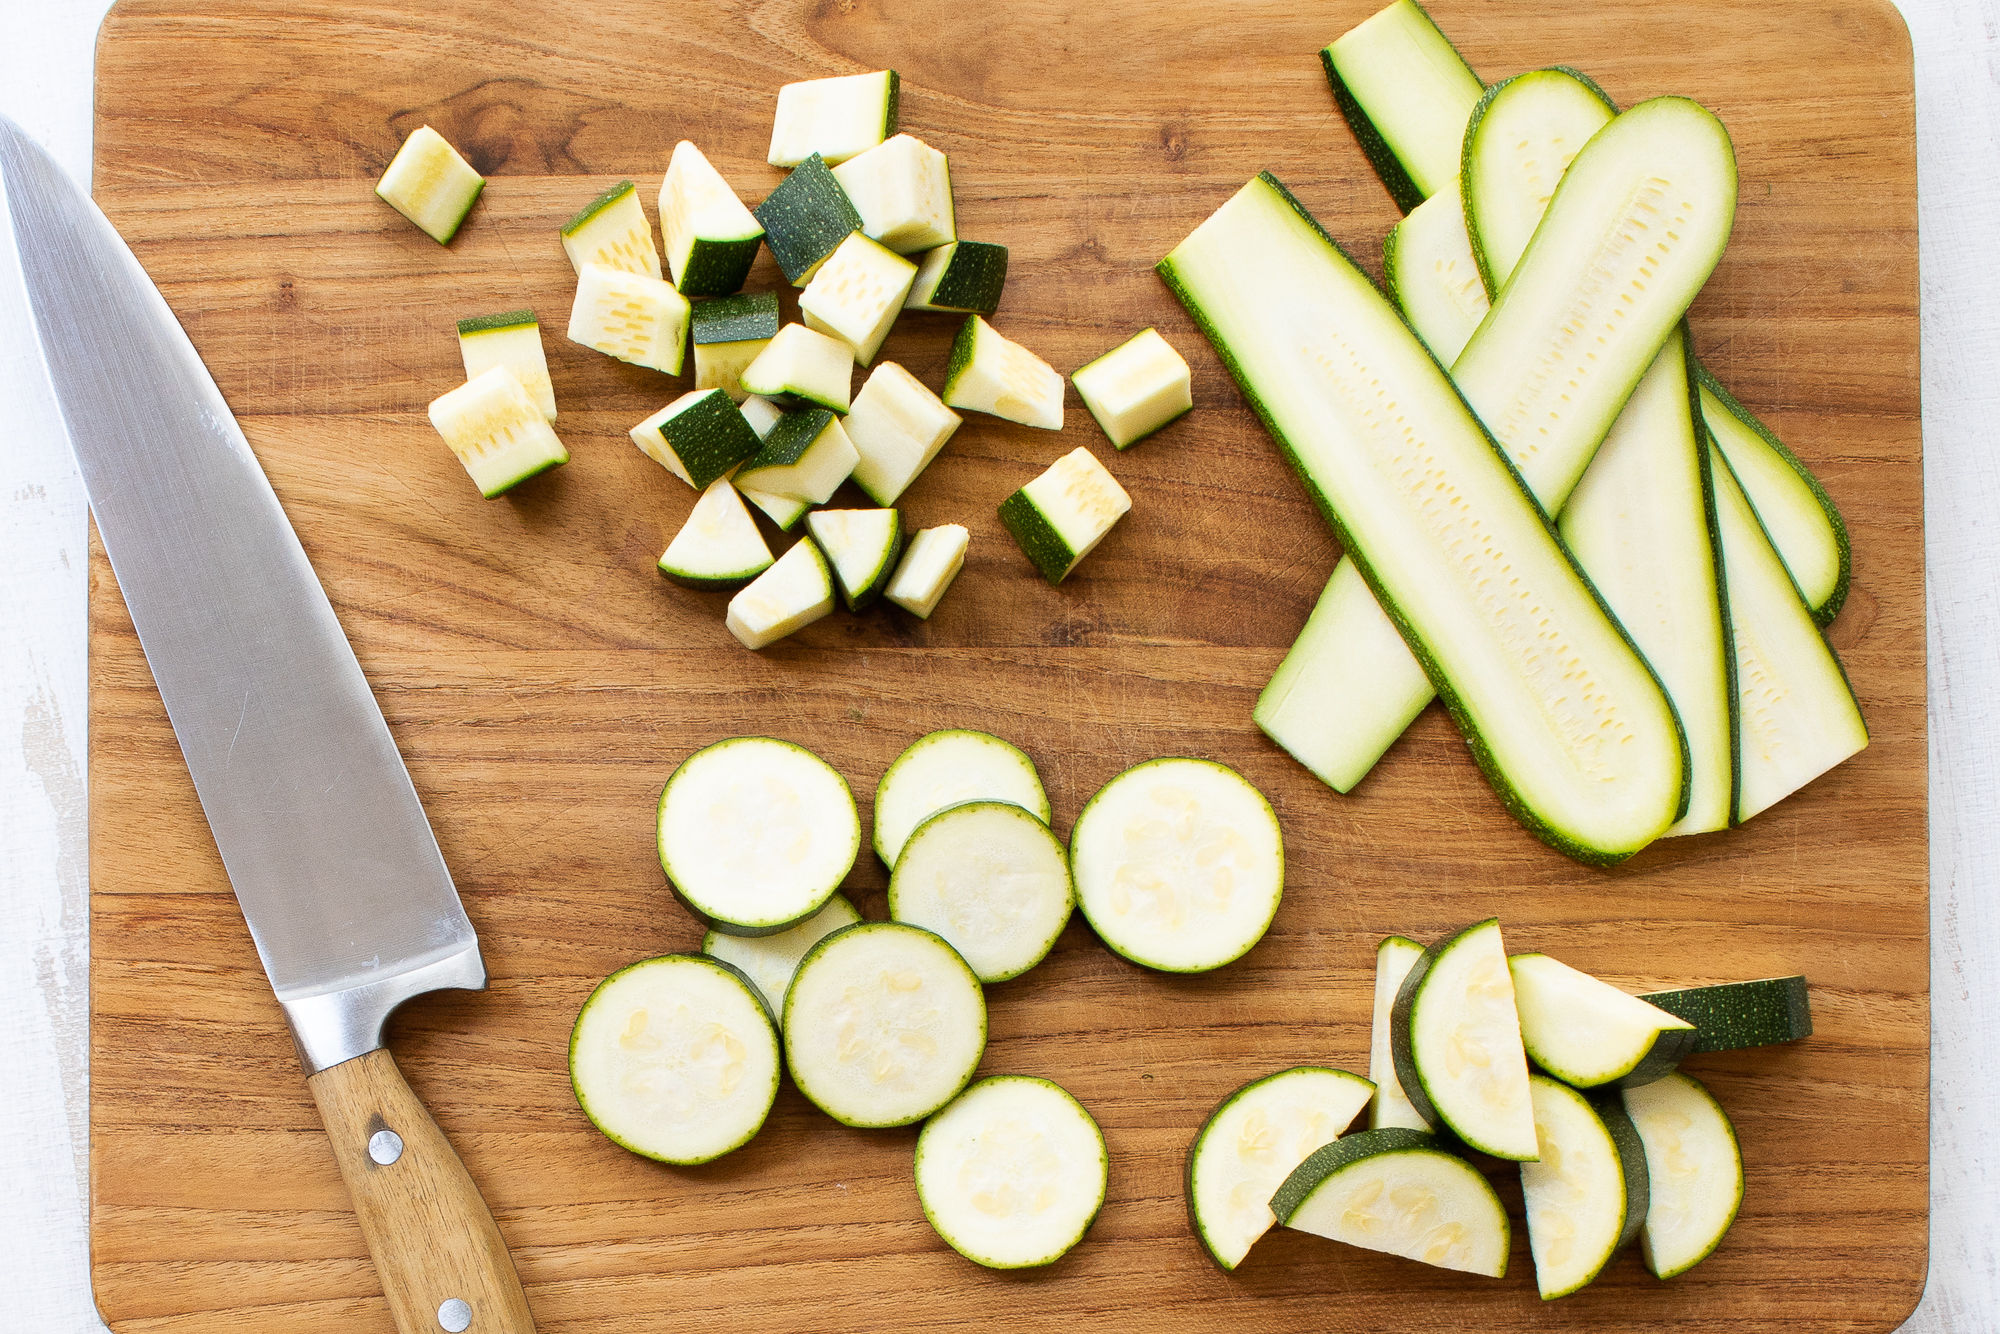 A knife on a wood cutting board next to pieces of zucchini cut using different methods